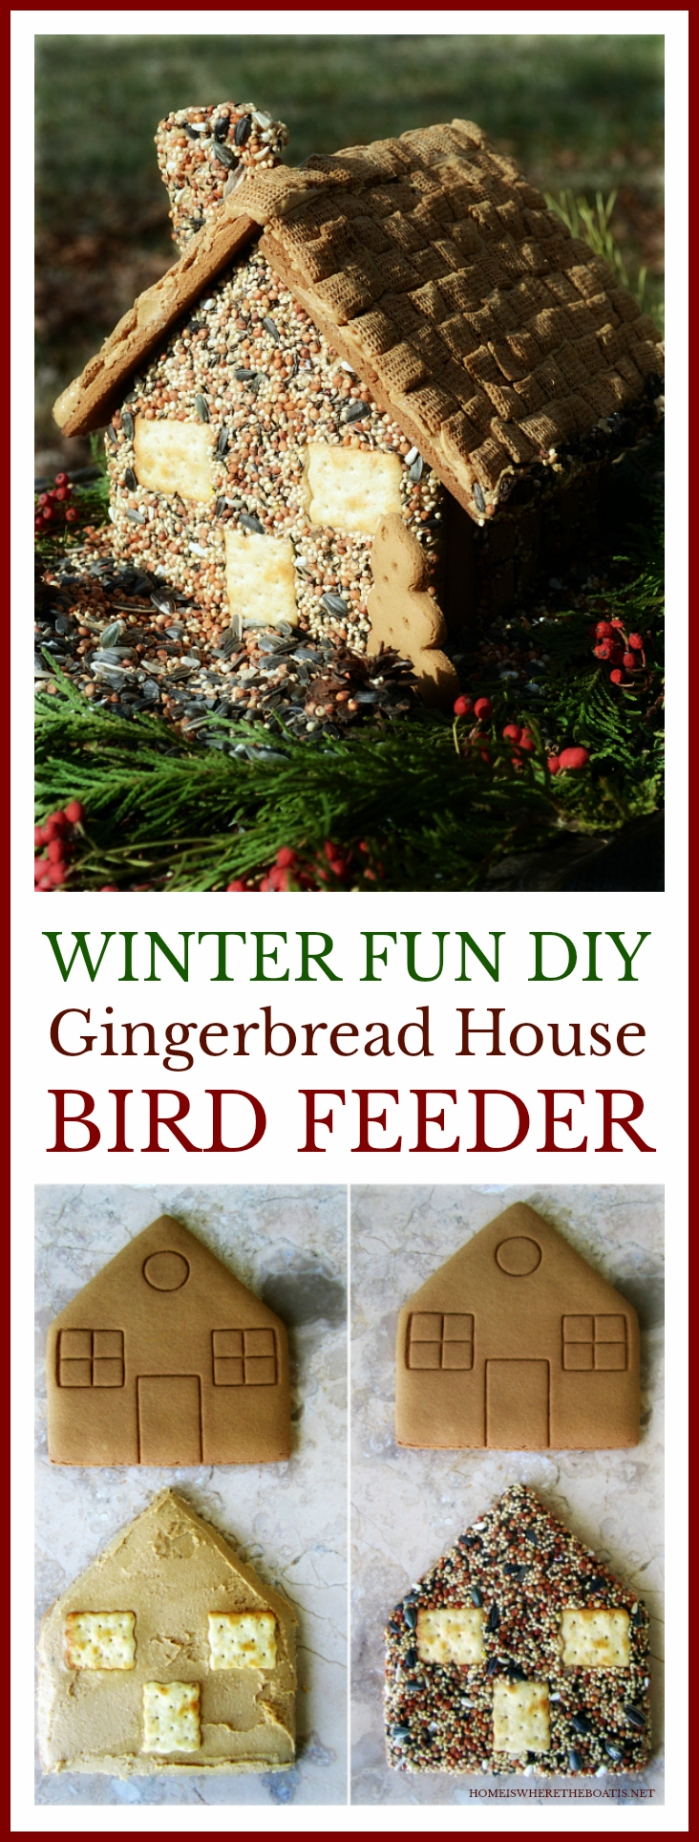 Make an edible house for the birds, a fun activity with the kids using a gingerbread house kit from the grocery store!